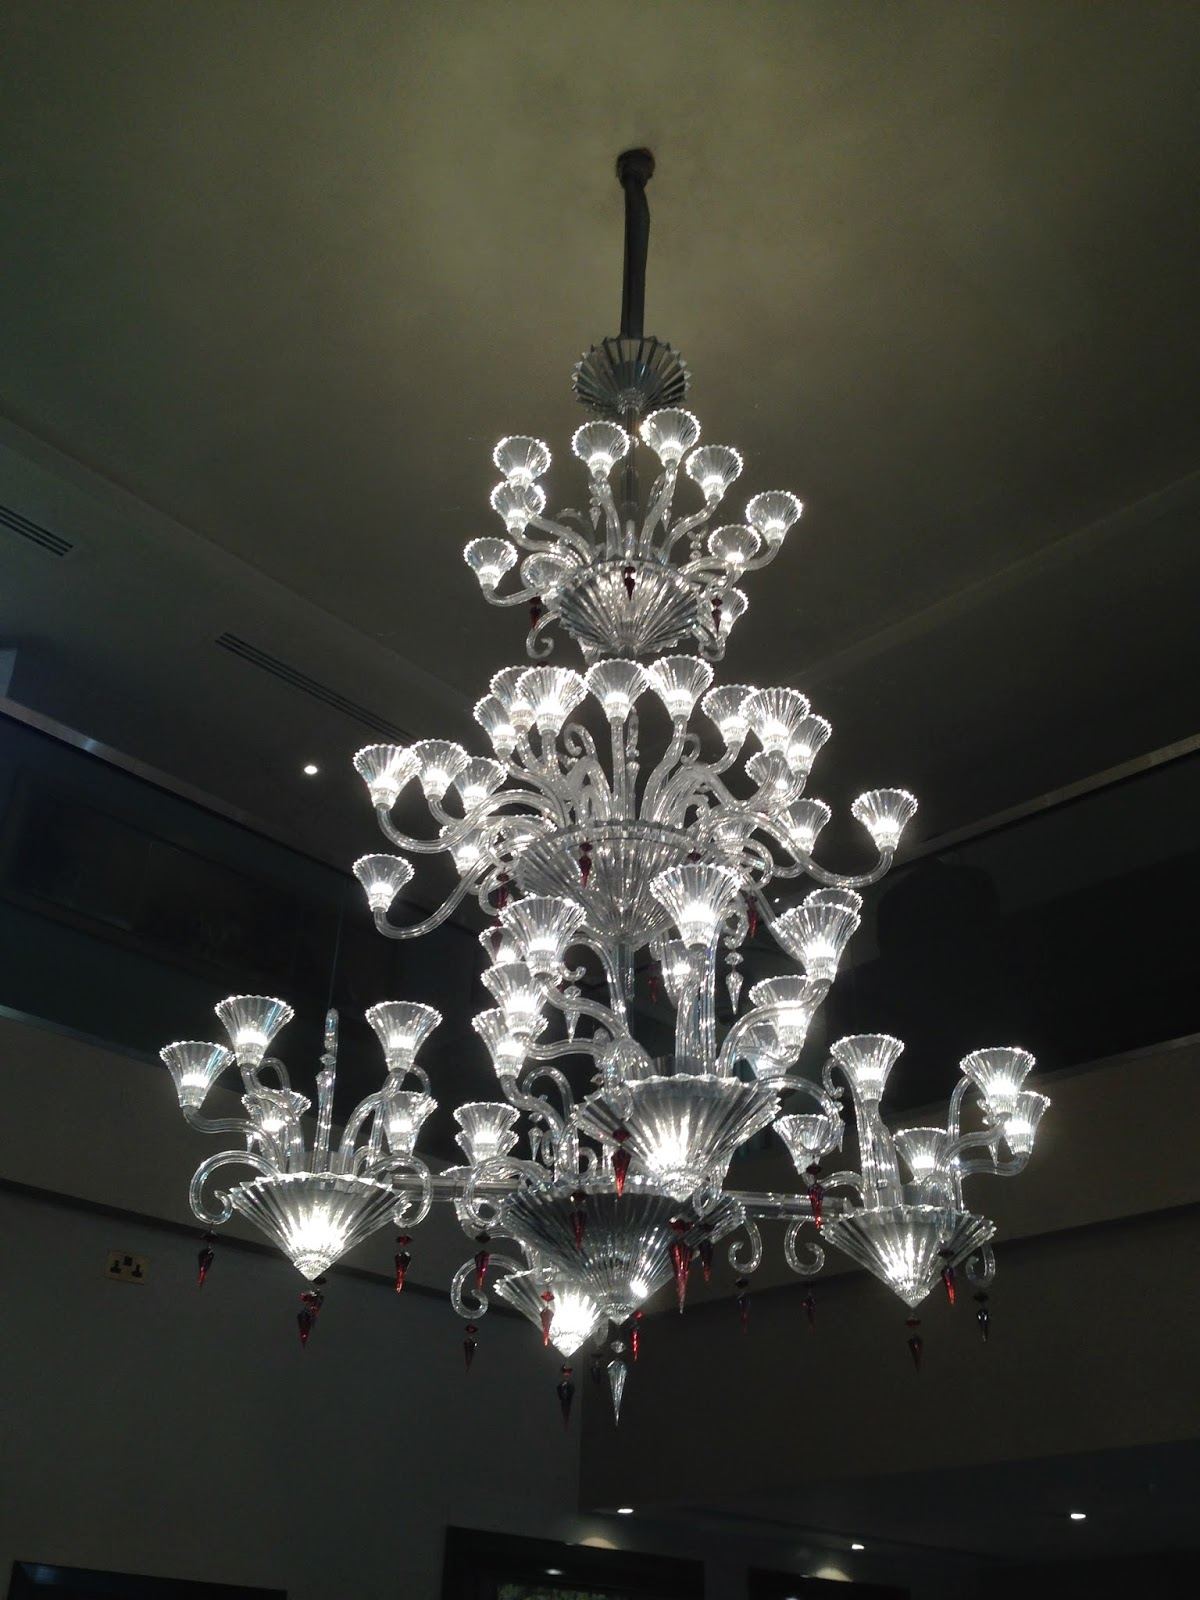 DAILY SCHMANKERL : For the Love of Chandeliers, The Mayfair Hotel, London